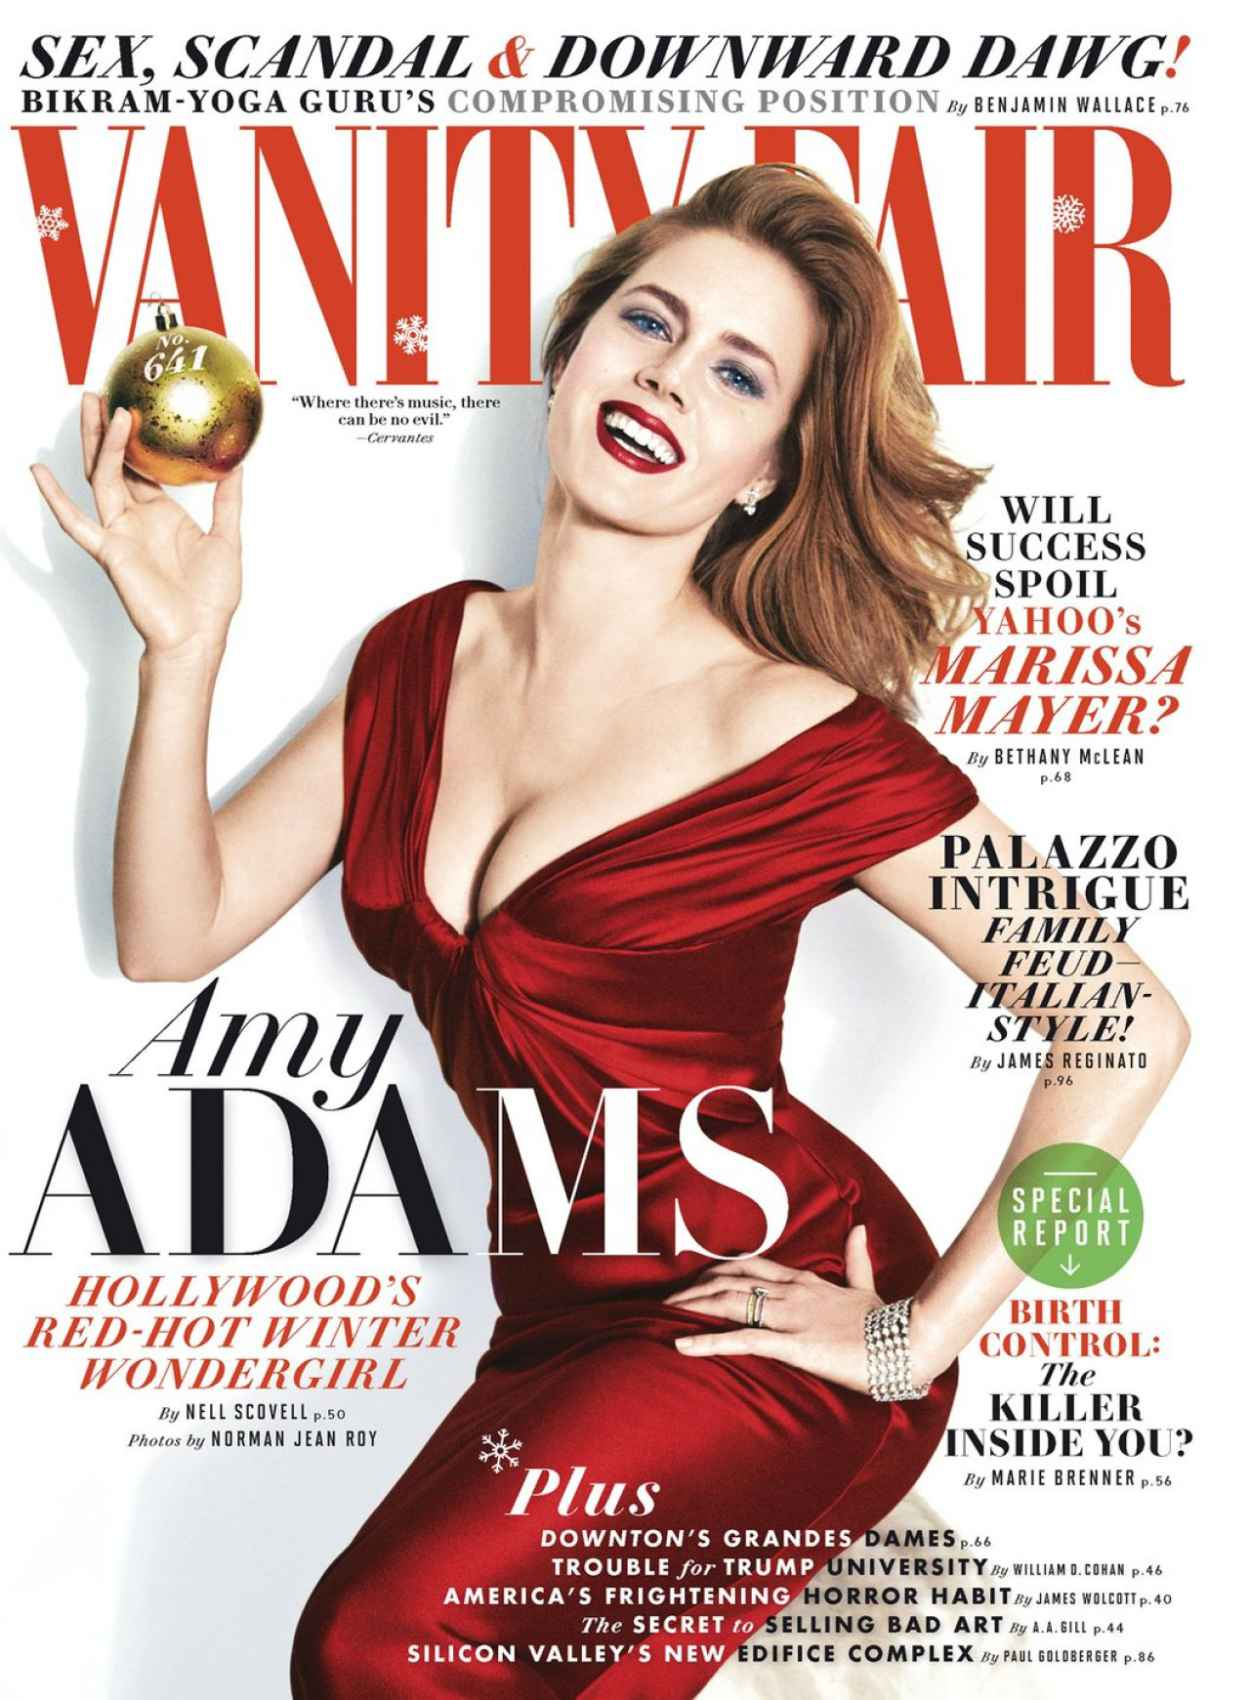 Amy Adams - VANITY FAIR Magazine - January 2015 Issue - N. J. R. Photoshoot-1